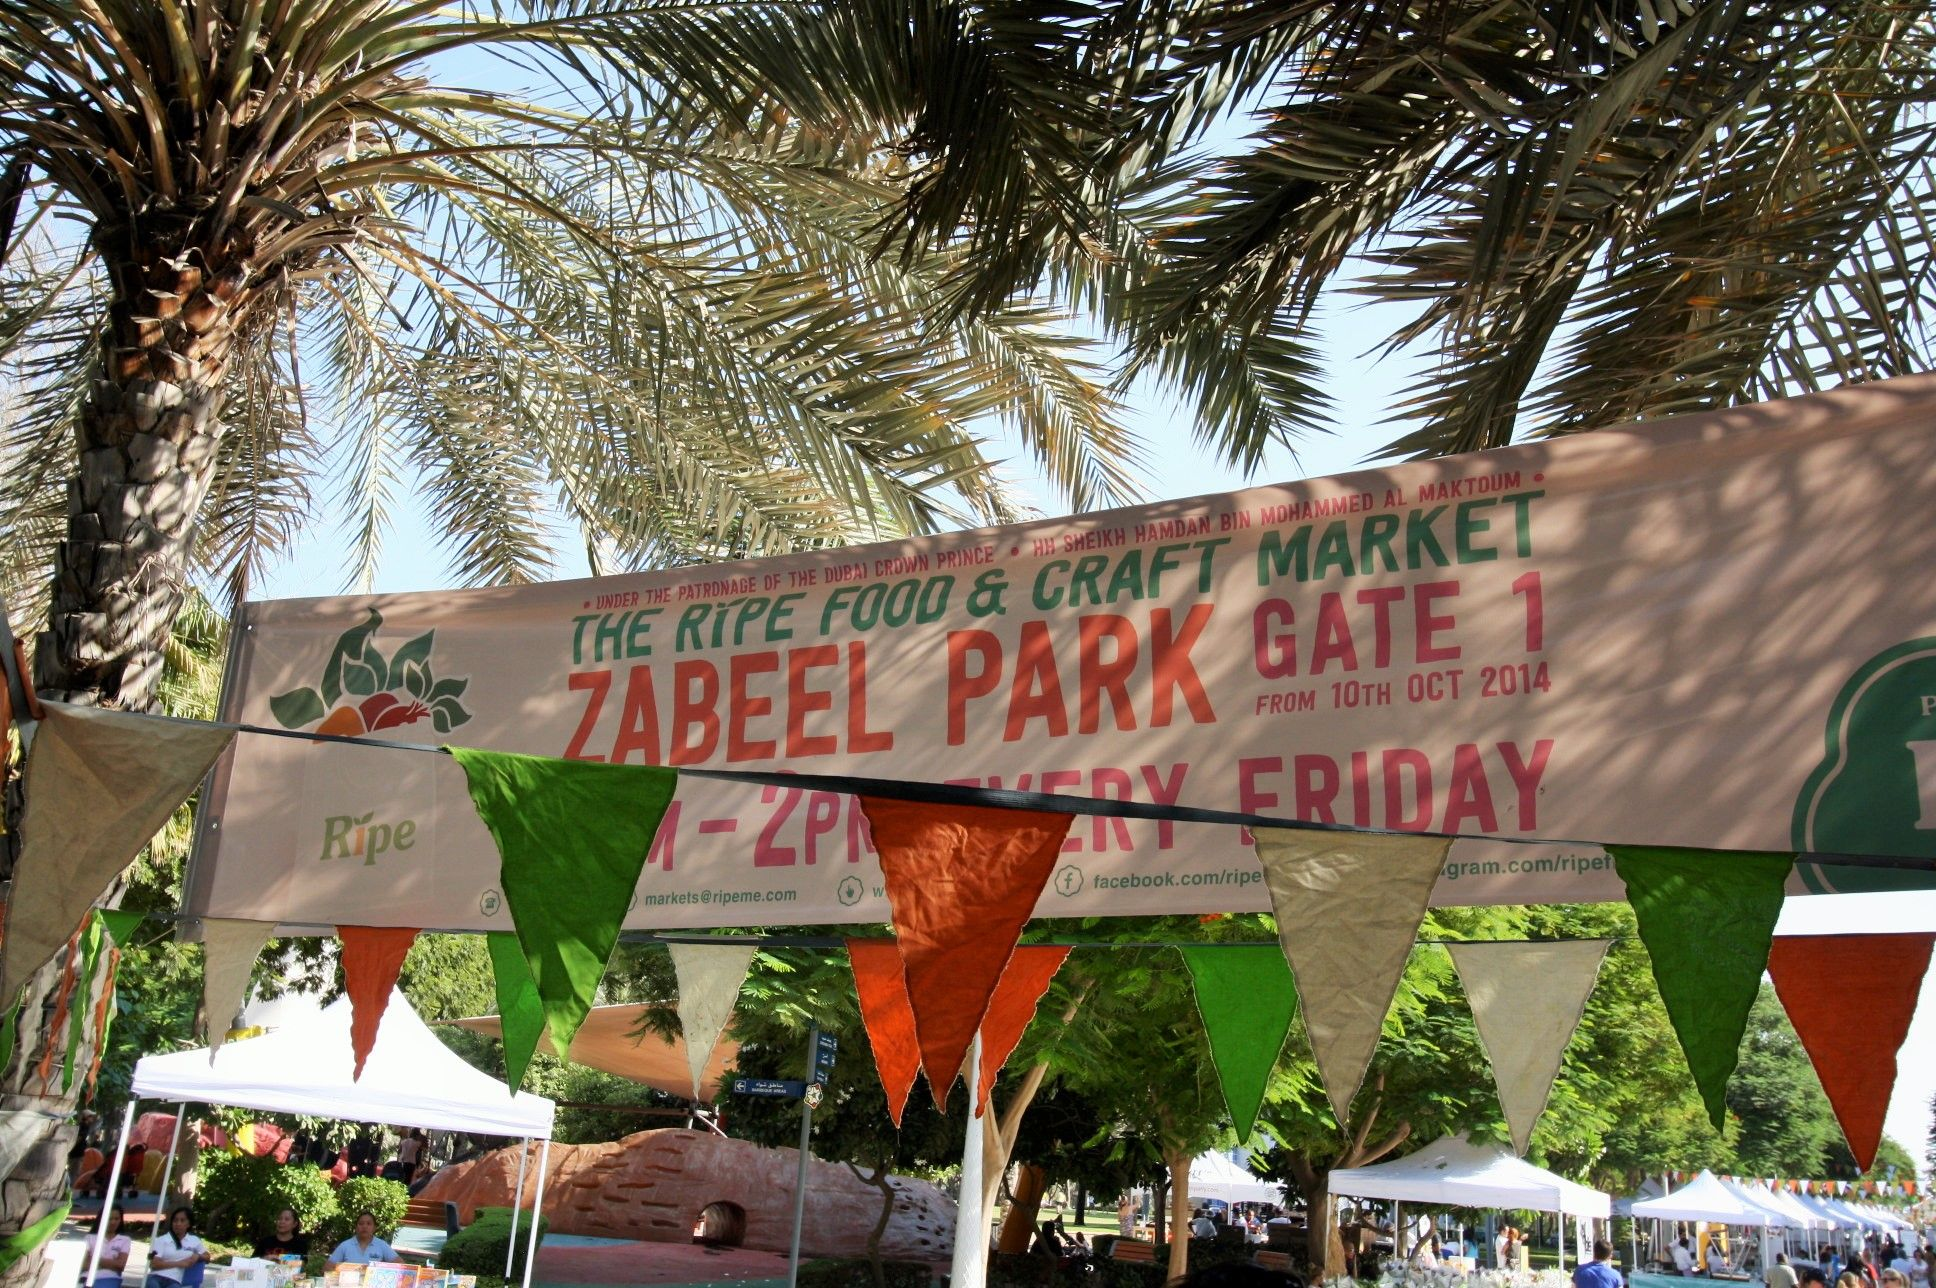 The #ripemarket is a #mydubai moment! Join us every Friday from 9am til 2pm at Zabeel Park, Gate 1, Dubai